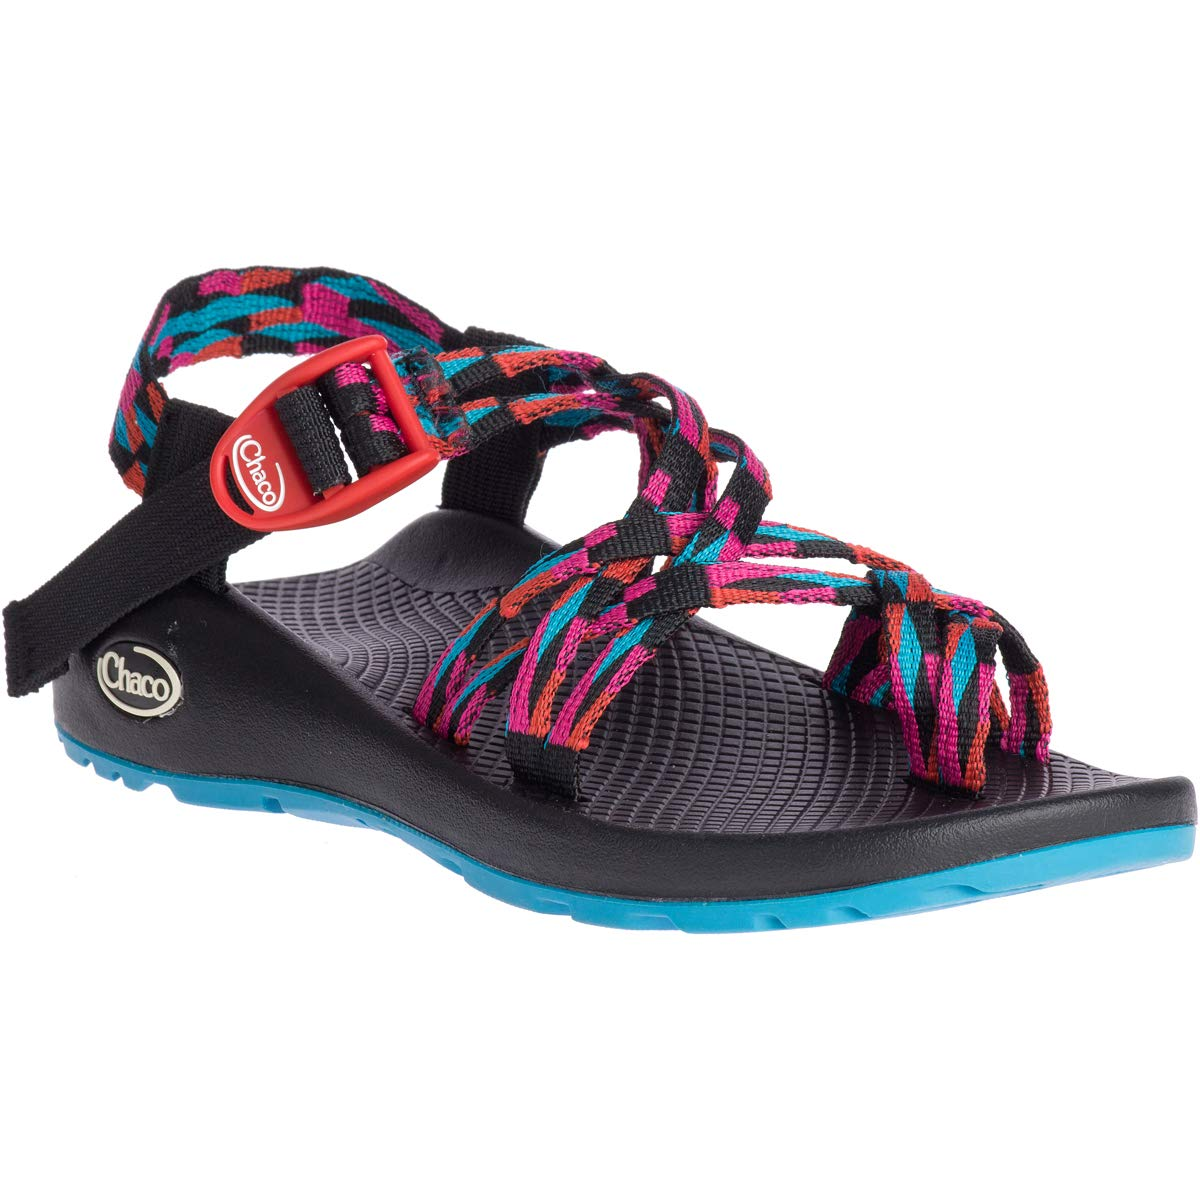 Chaco Women s ZX/2 Classic Sandal - Band Magenta Band Magenta 5